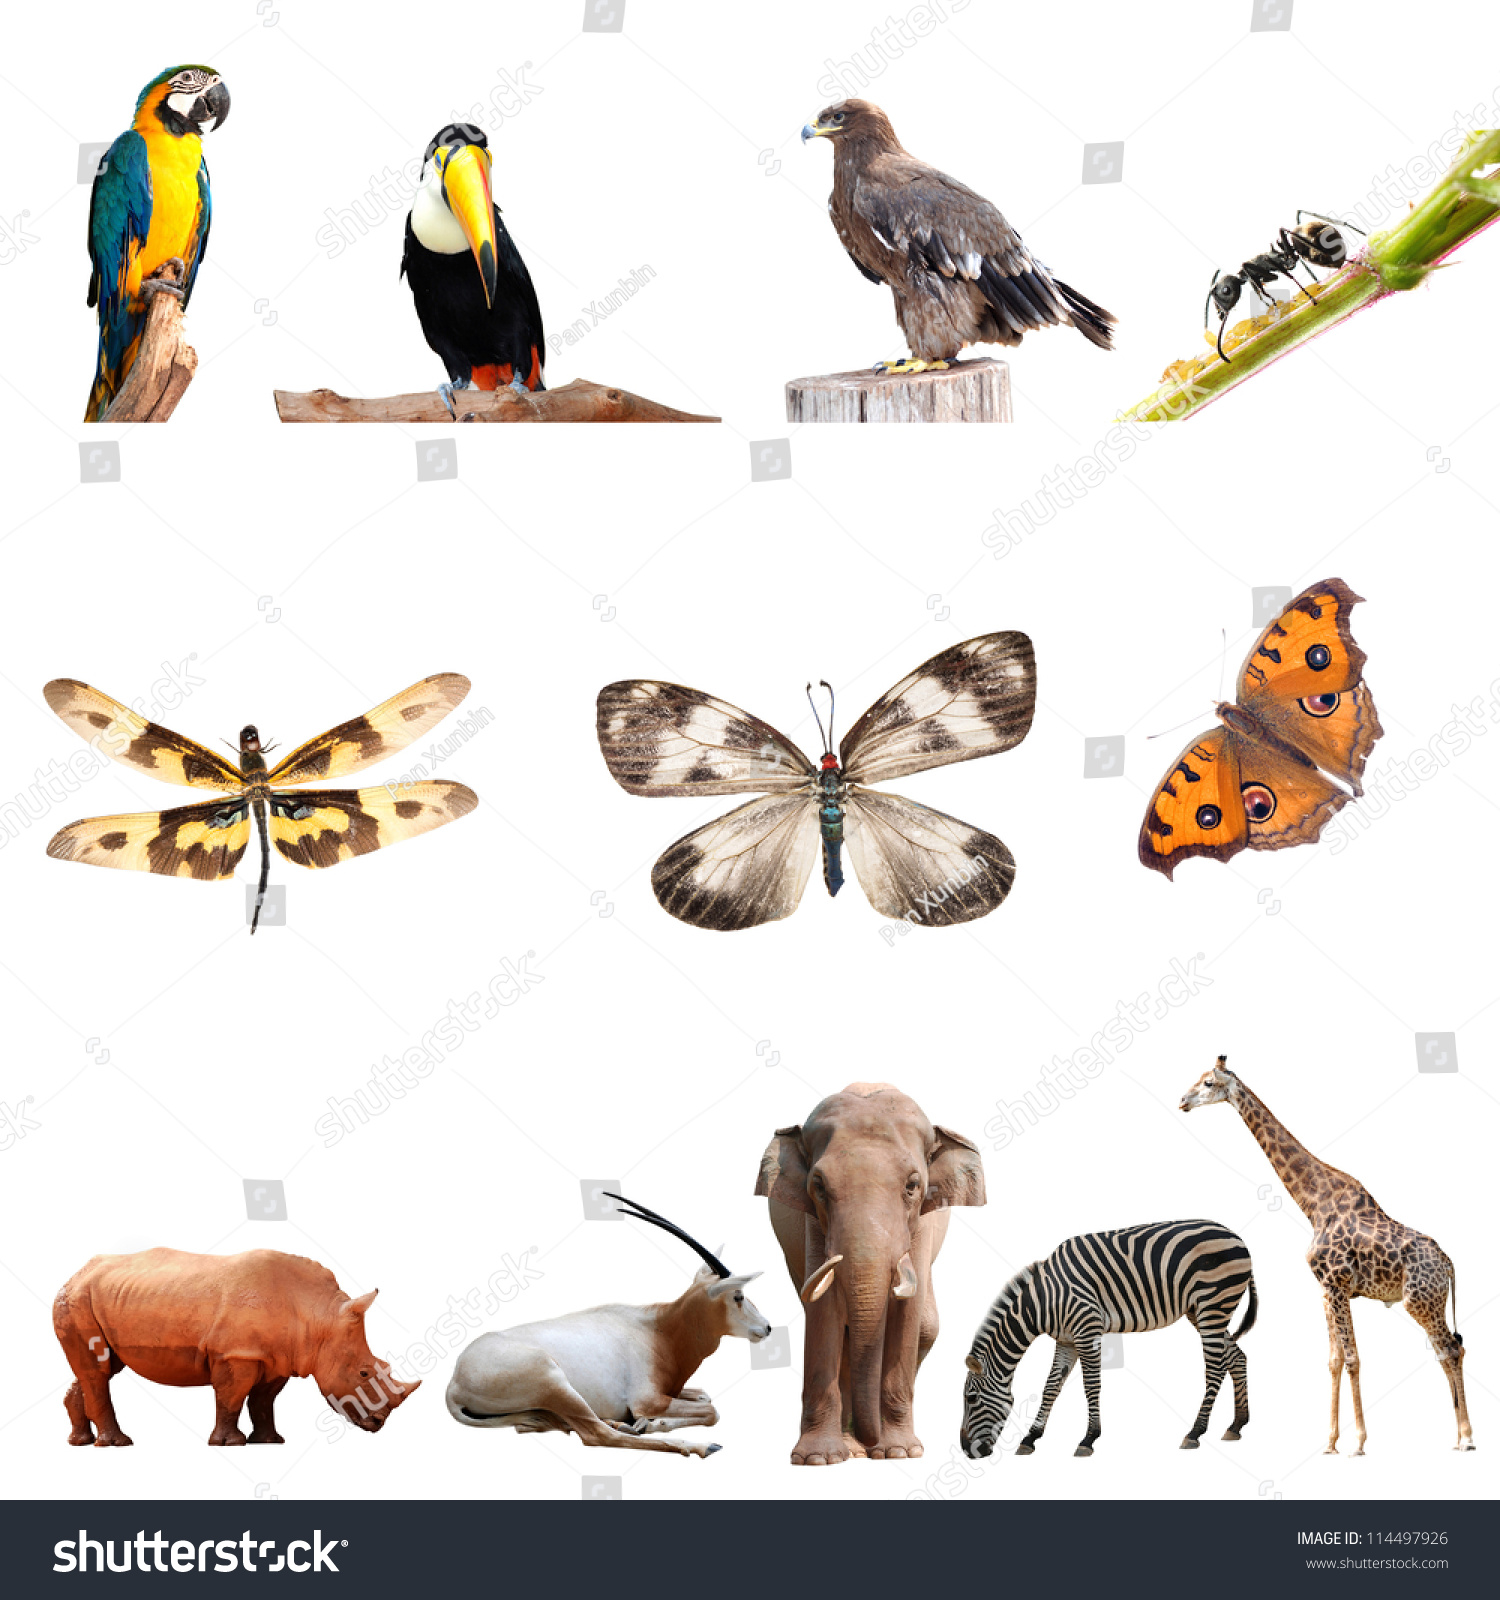 animal collection isolated shutterstock